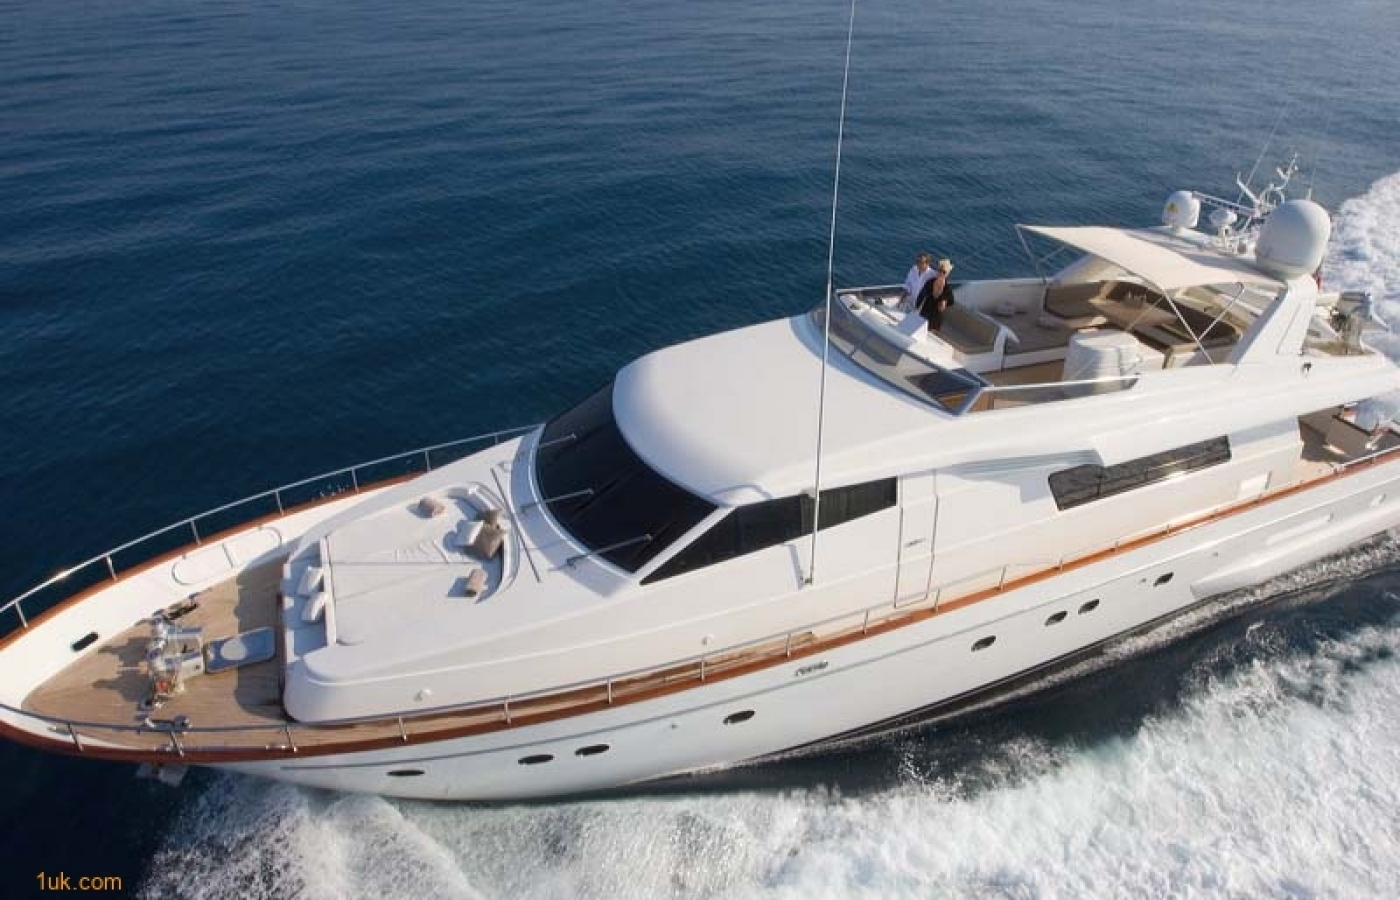 Solal: West Mediterranean Yacht Charter